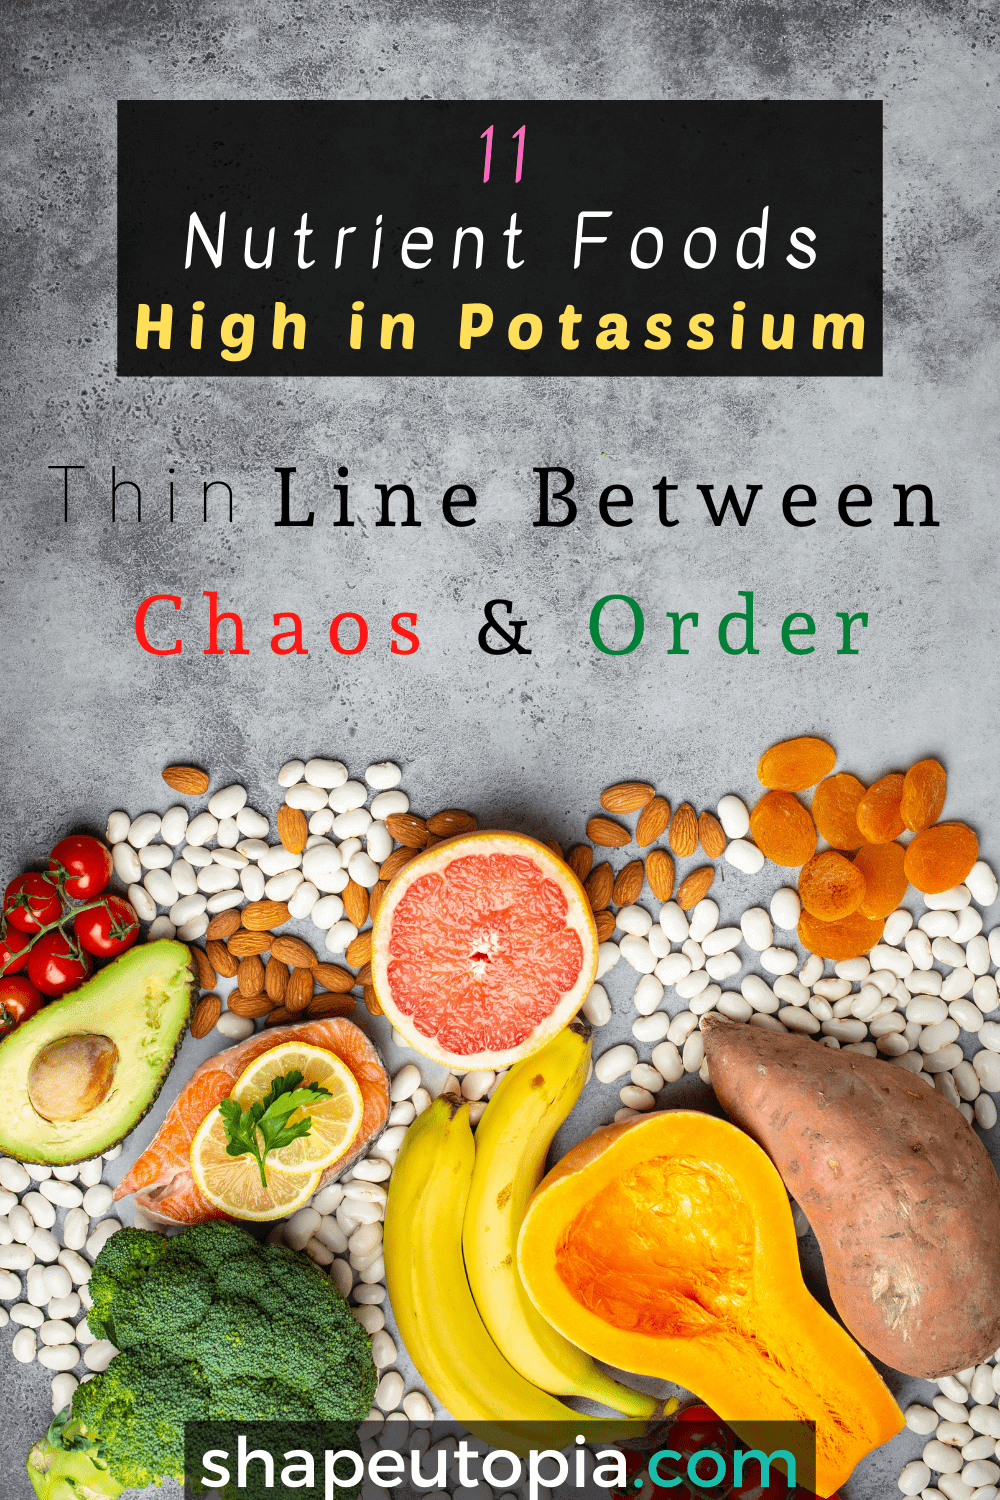 11 Nutrient Foods High in Potassium – Thin Line Between Chaos & Order